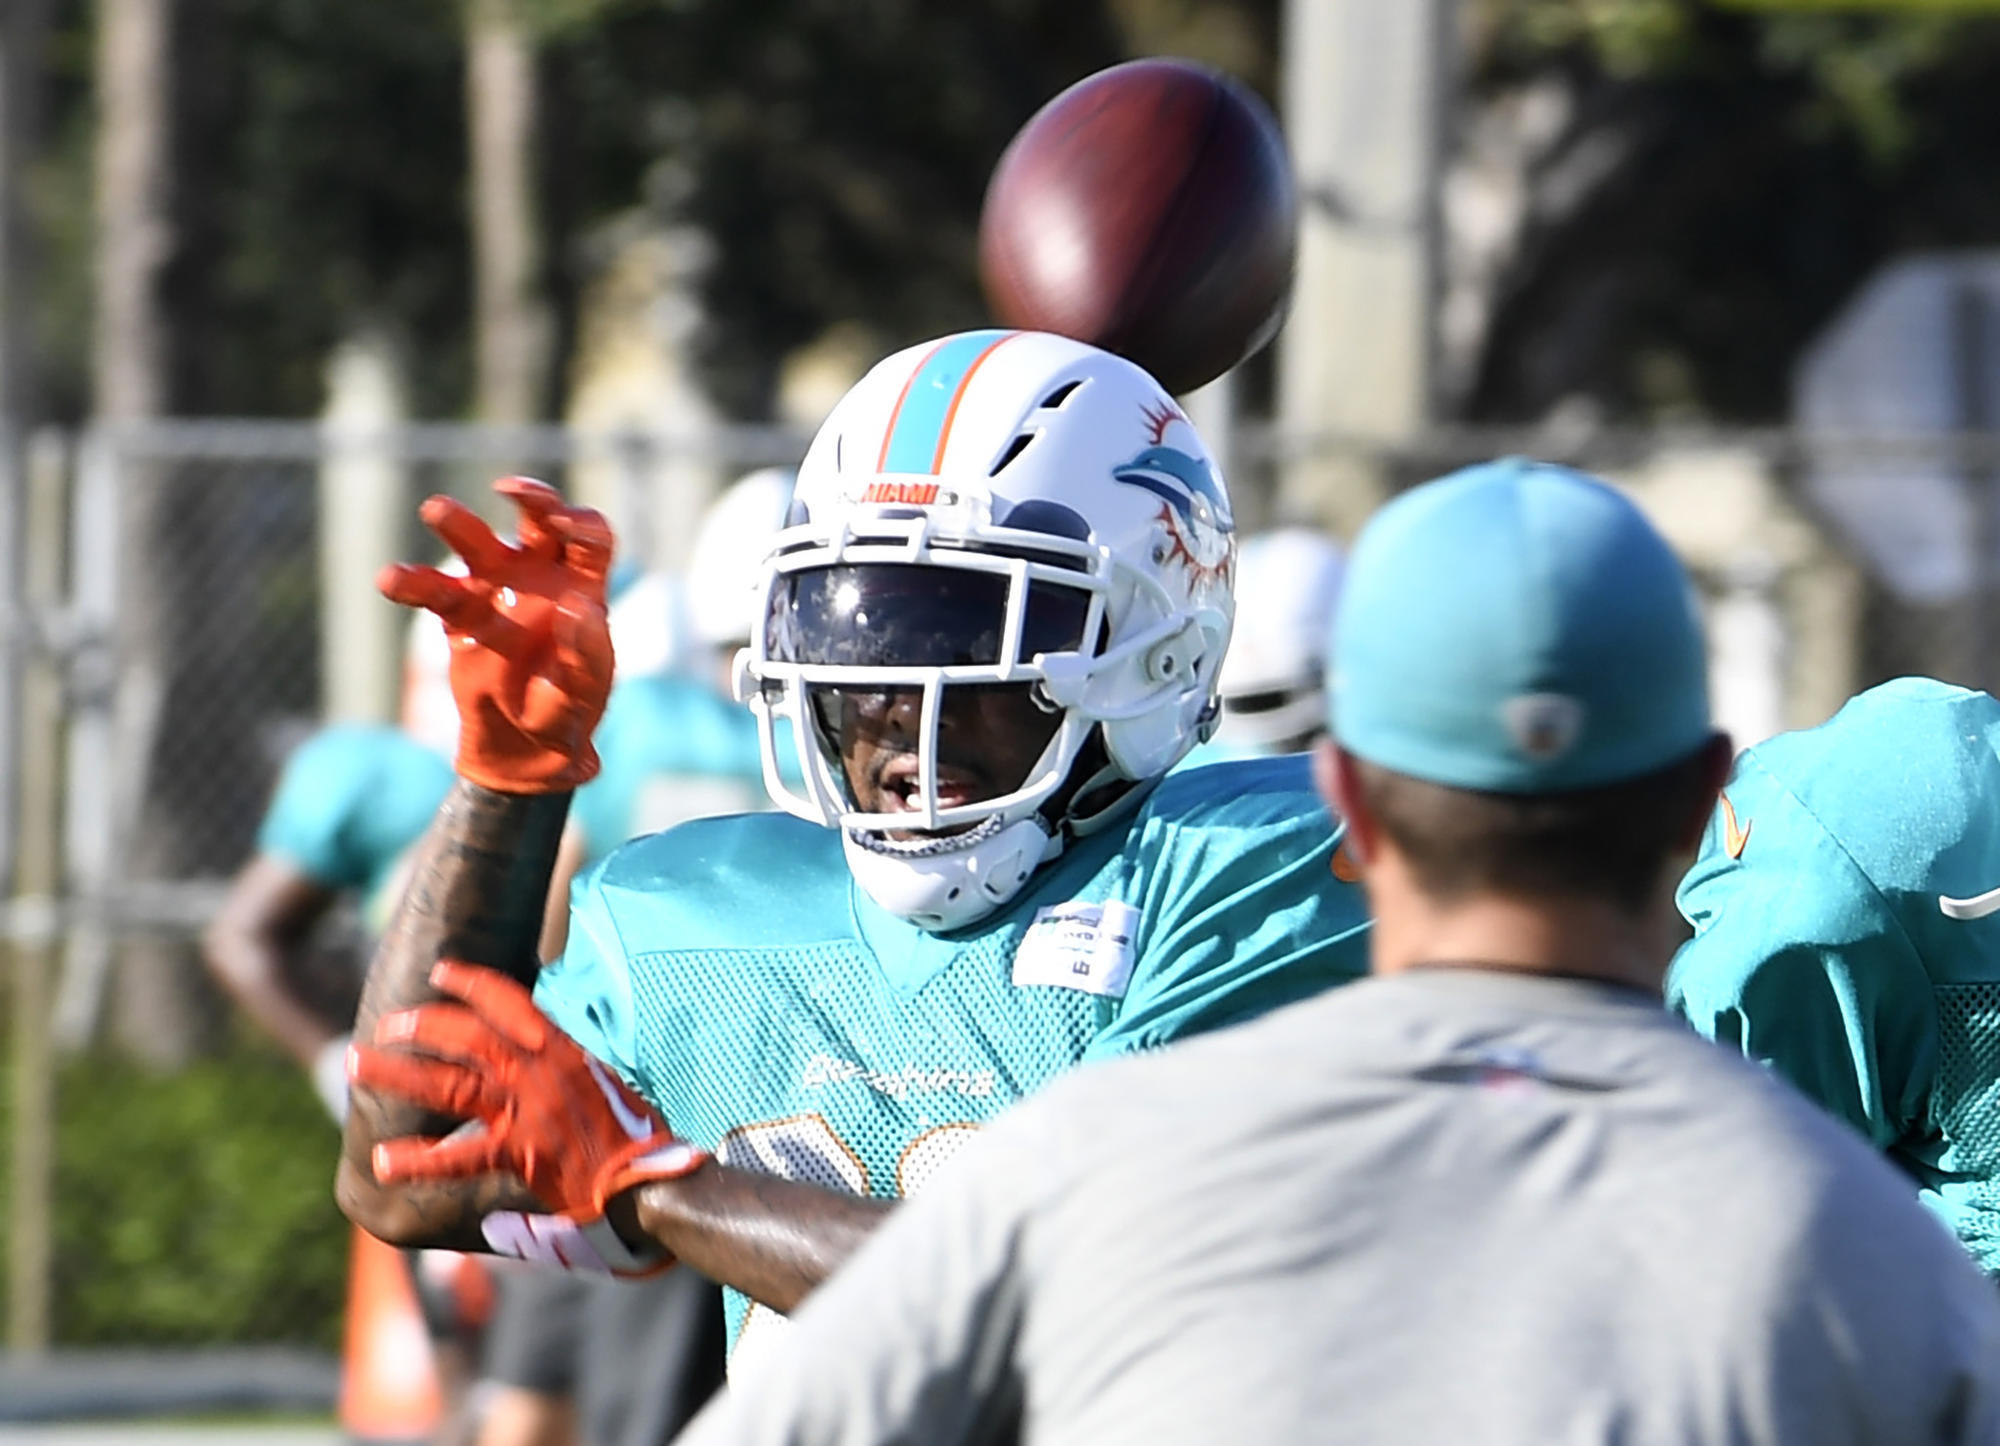 Fl-sp-dolphins-maurice-smith-20180807